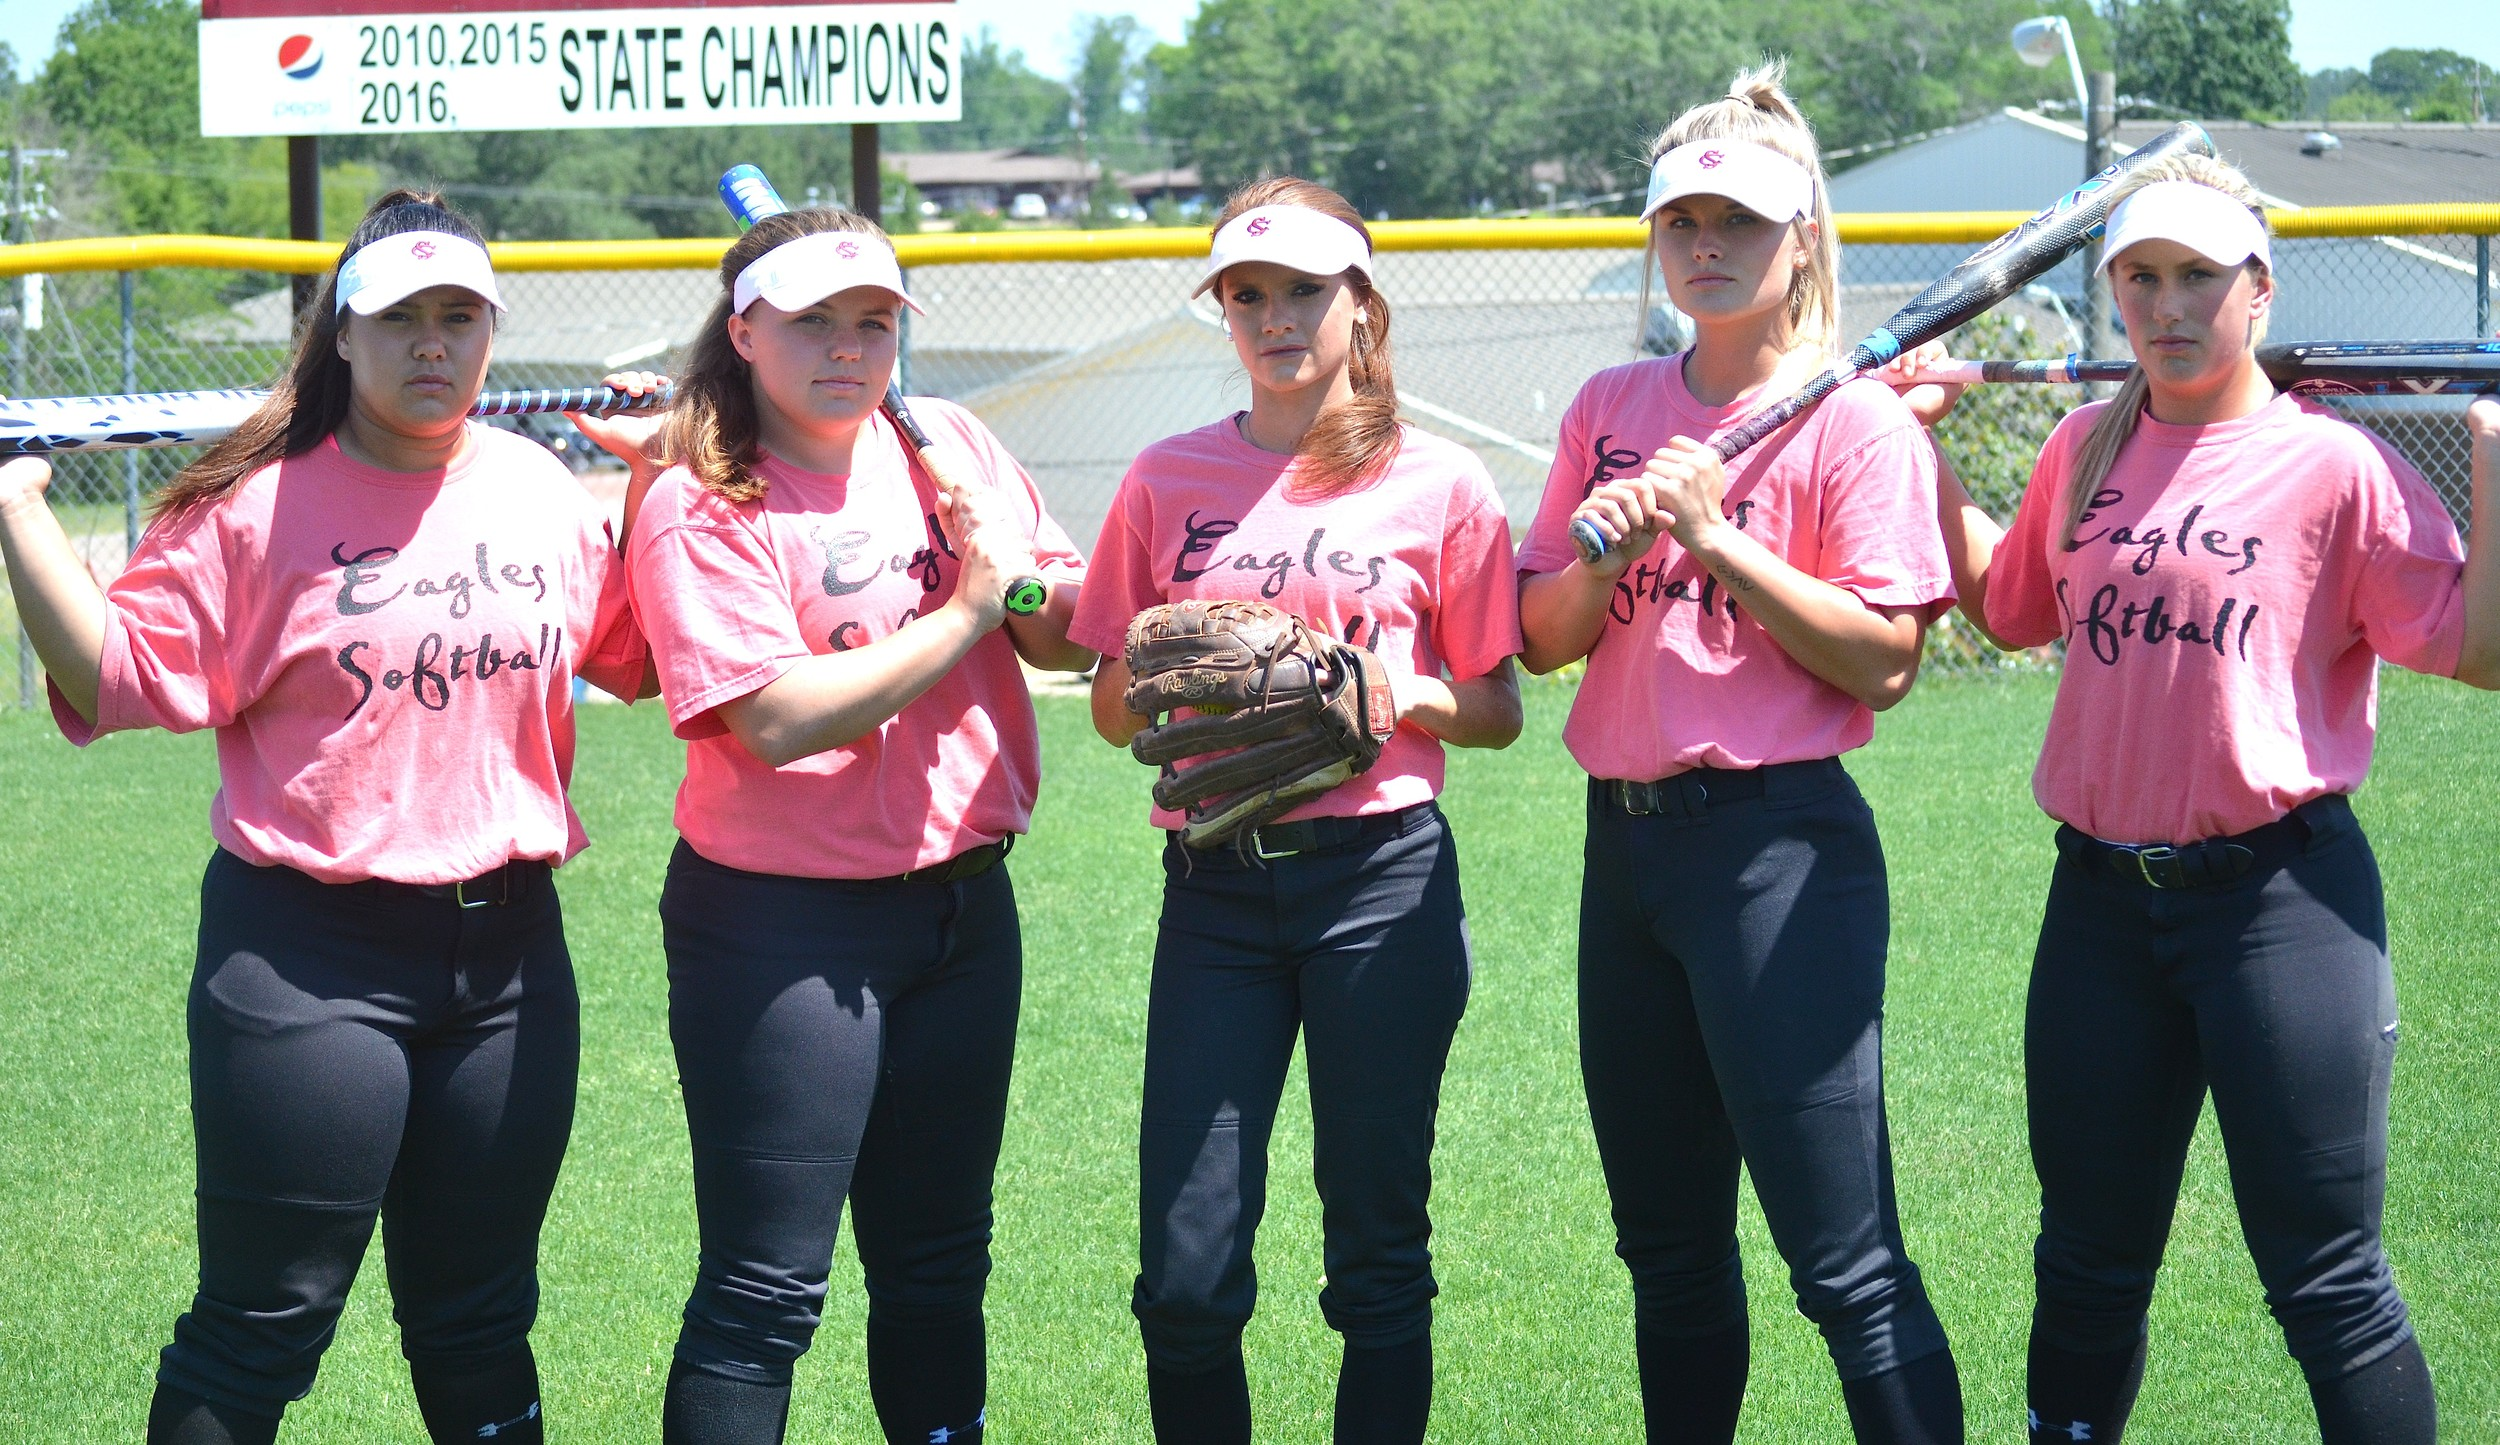 Sumiton Christian seniors, from left, Jenna Ergle, Abbey Bice, Kamree Lay, Kendall Beth Sides and Savanah Langston, are going for their third straight state softball championship. The Eagles play Marion County on Thursday in Montgomery.